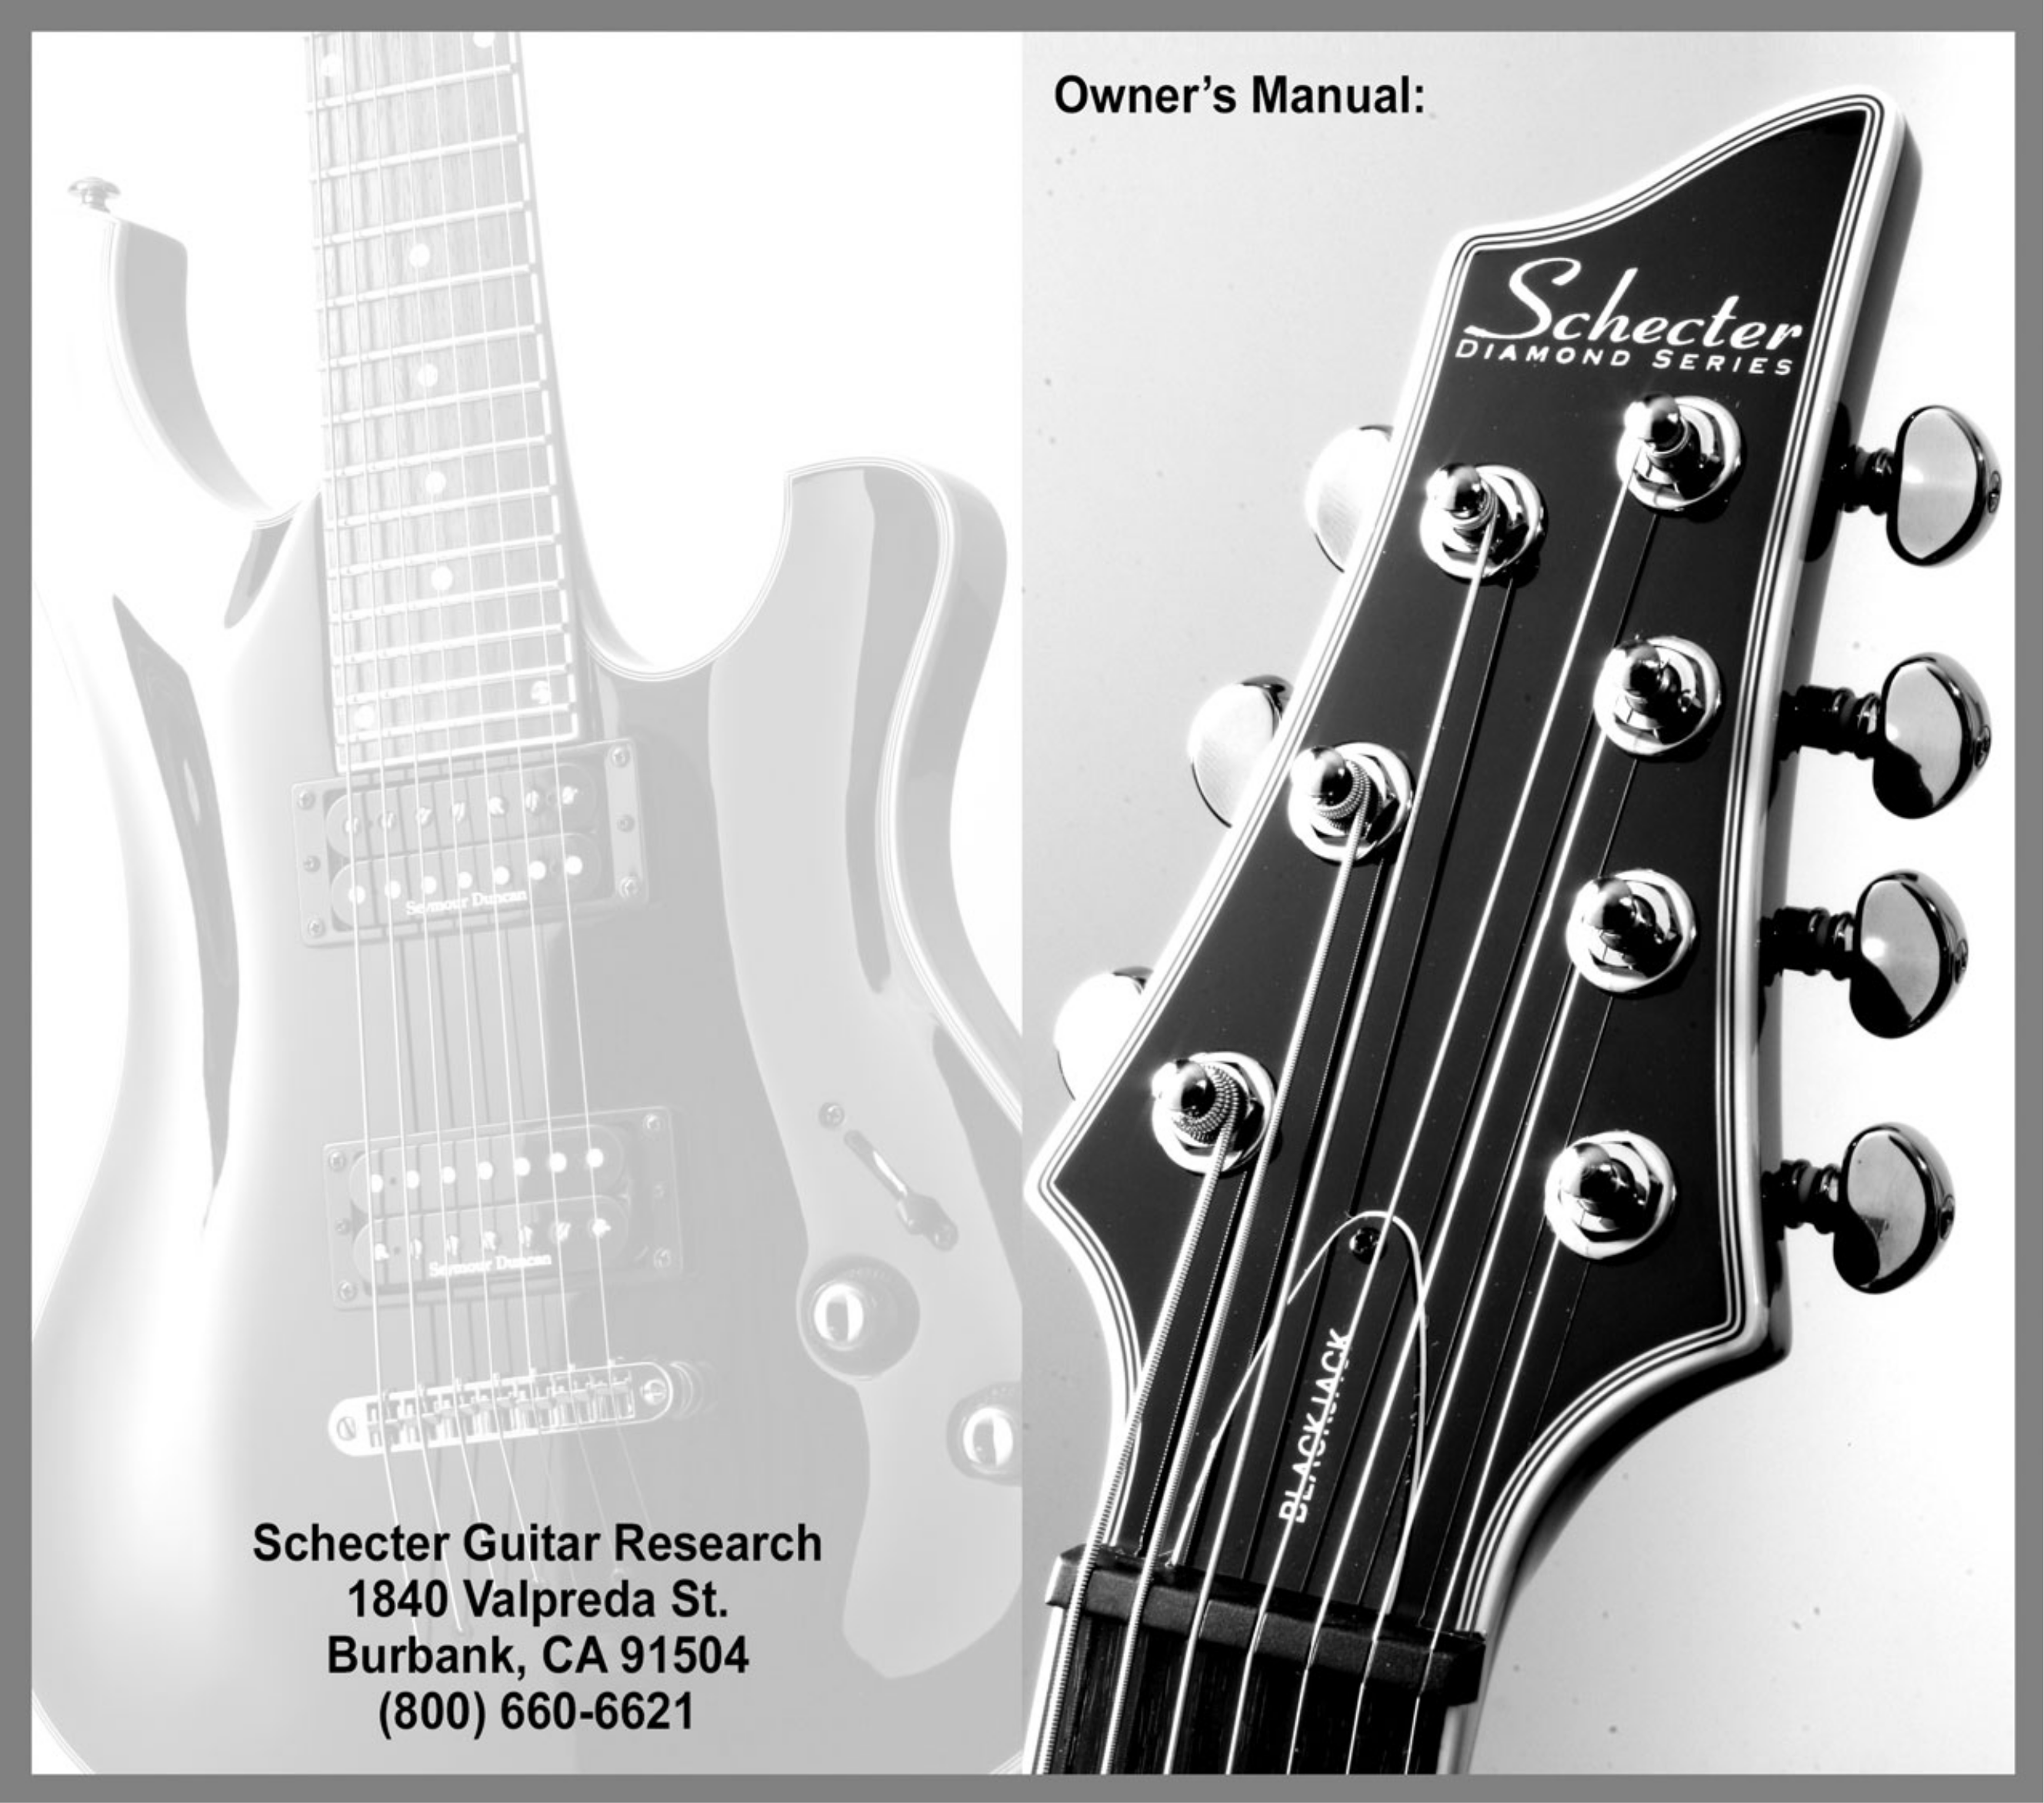 Schecter Guitar Wiring Diagrams Electrical Omen Diagram Diamond Series Hellraiser C 1 14 Silvertone